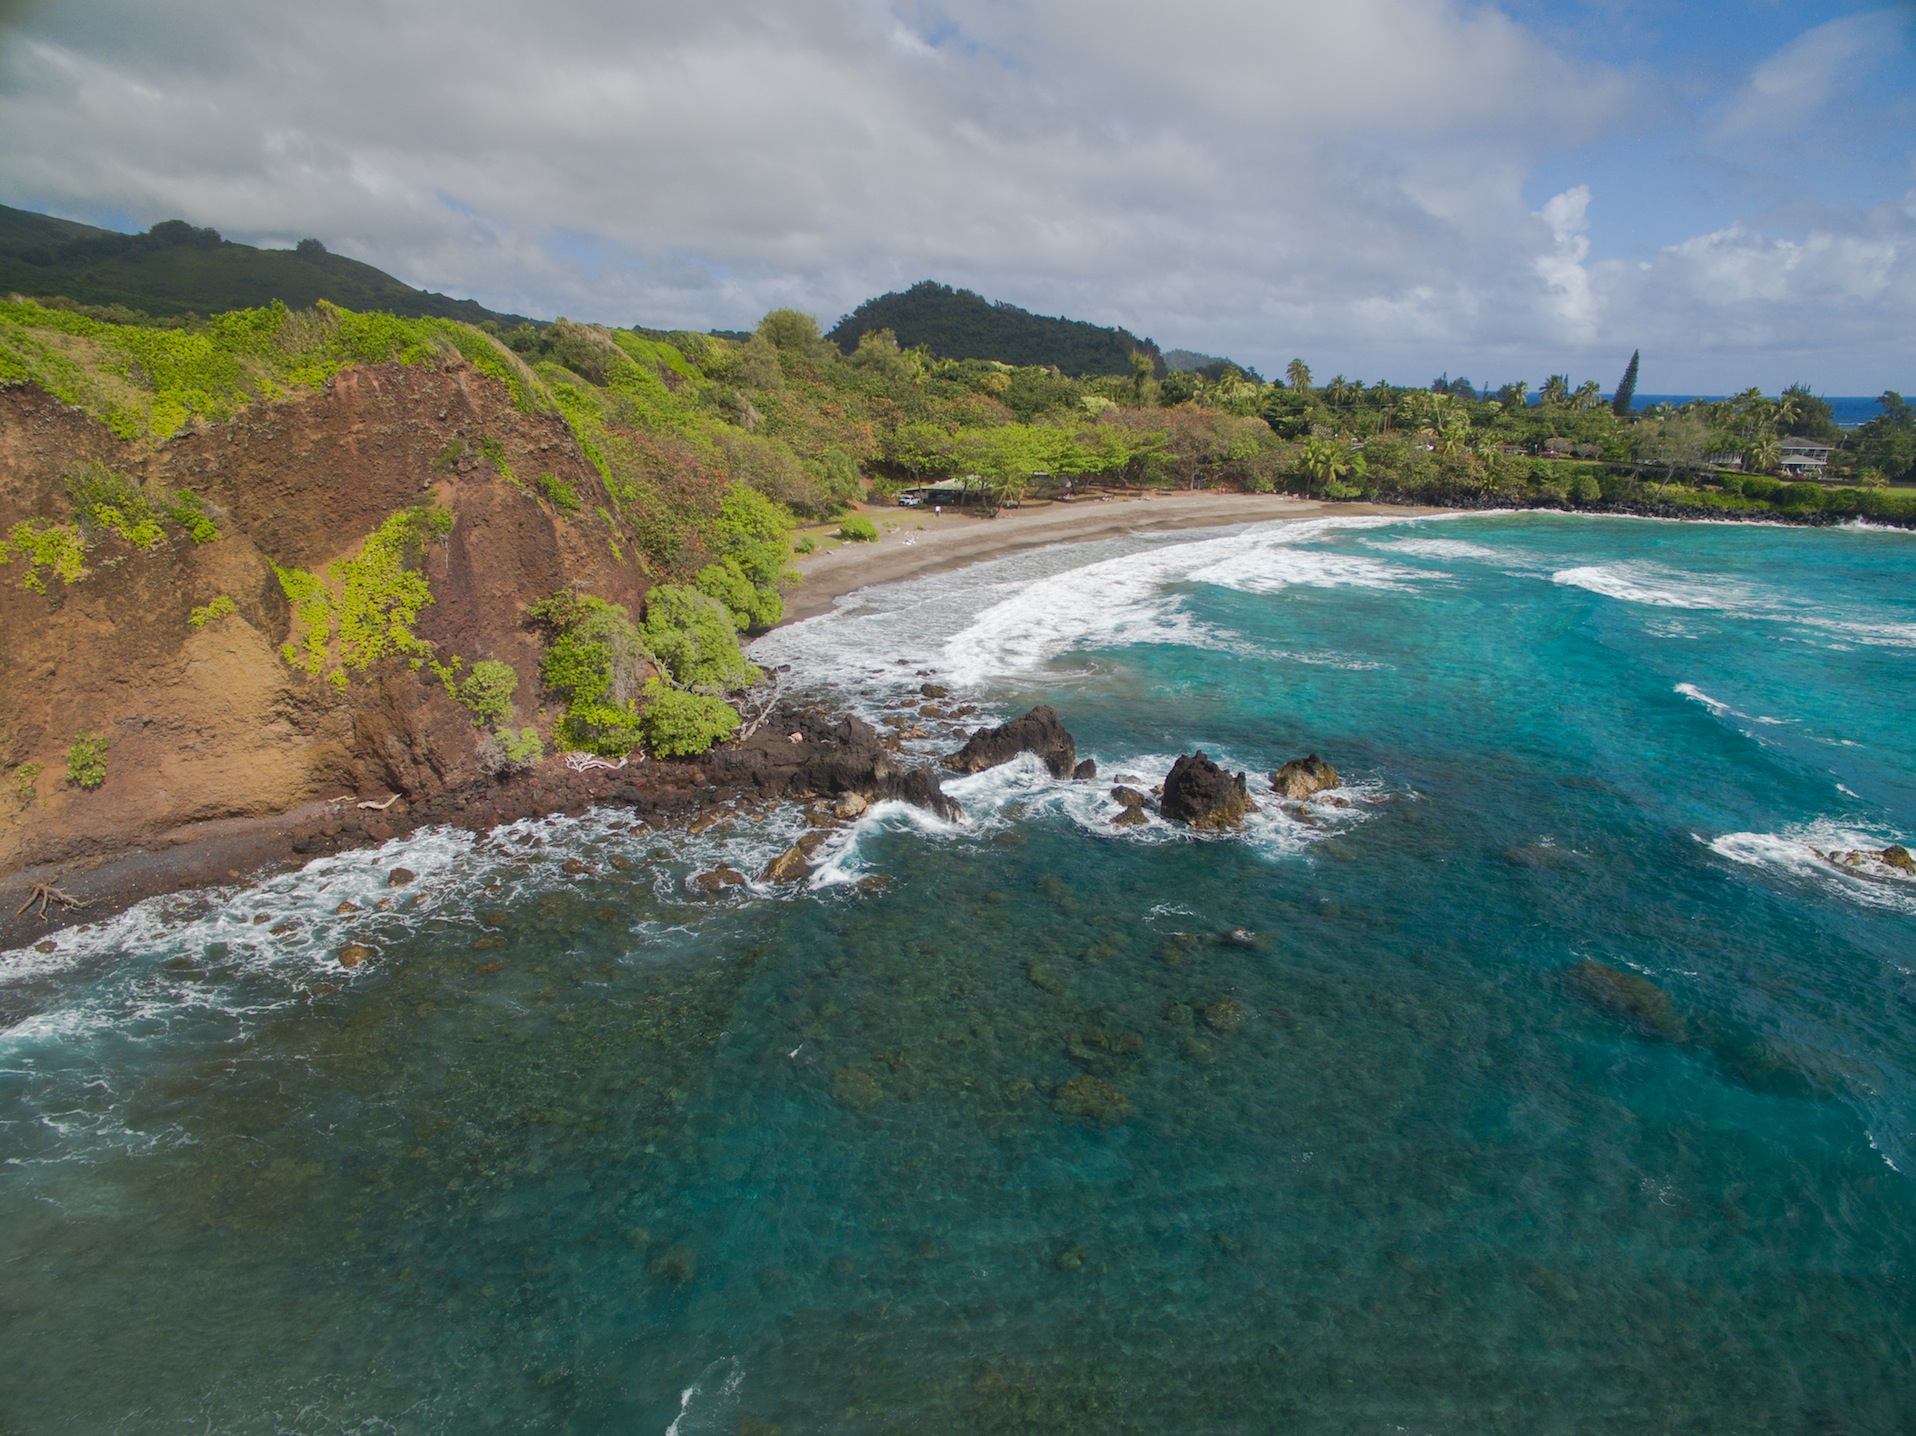 east-maui-aerial-sunski-roadtrip-maui.jpg